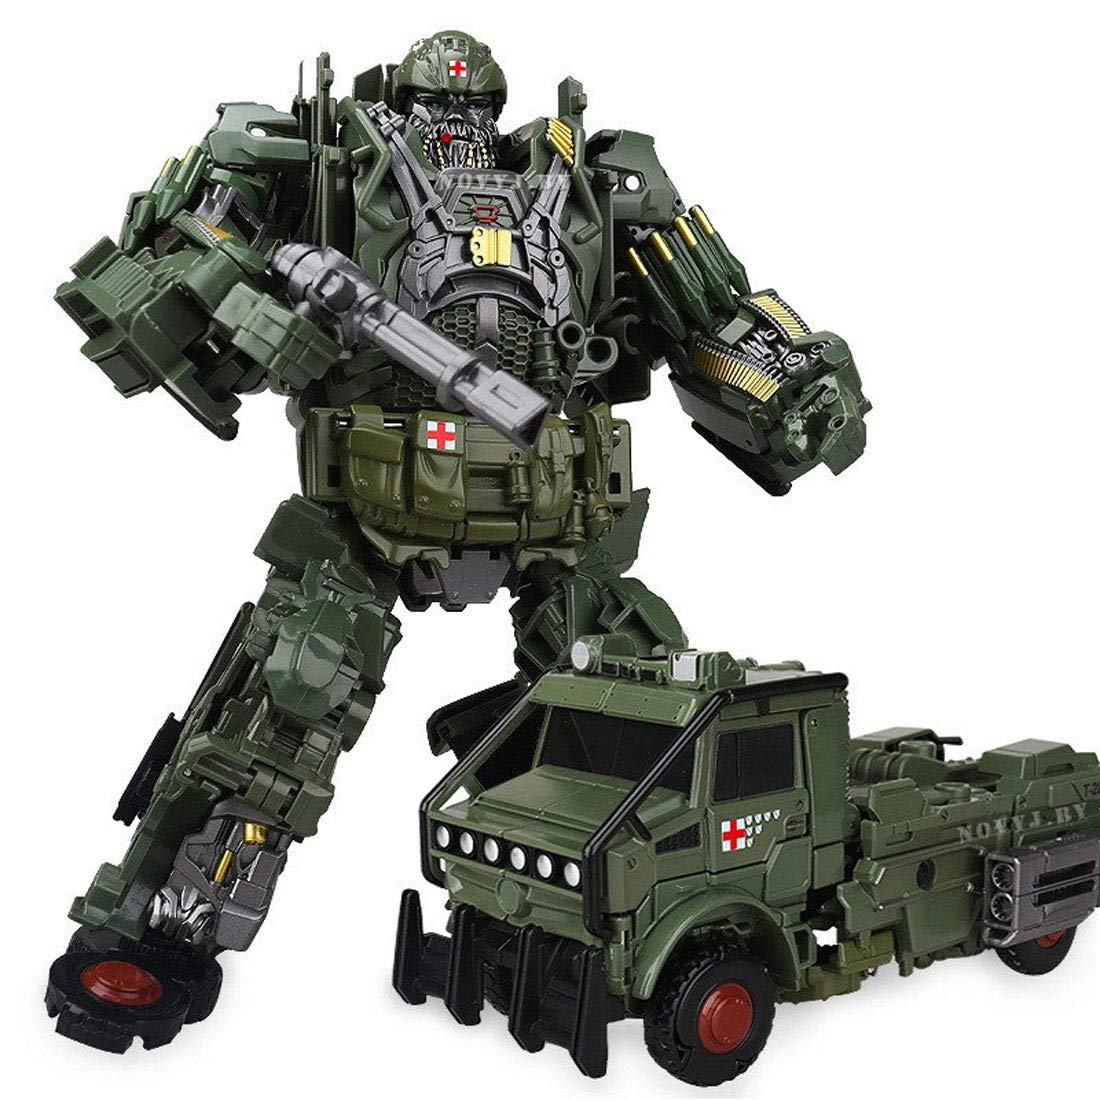 TRANSFORMERS 5 THE LAST KNIGHT AUTOBOT HOUND K.O ACTION FIGURES KID GIFT TOY